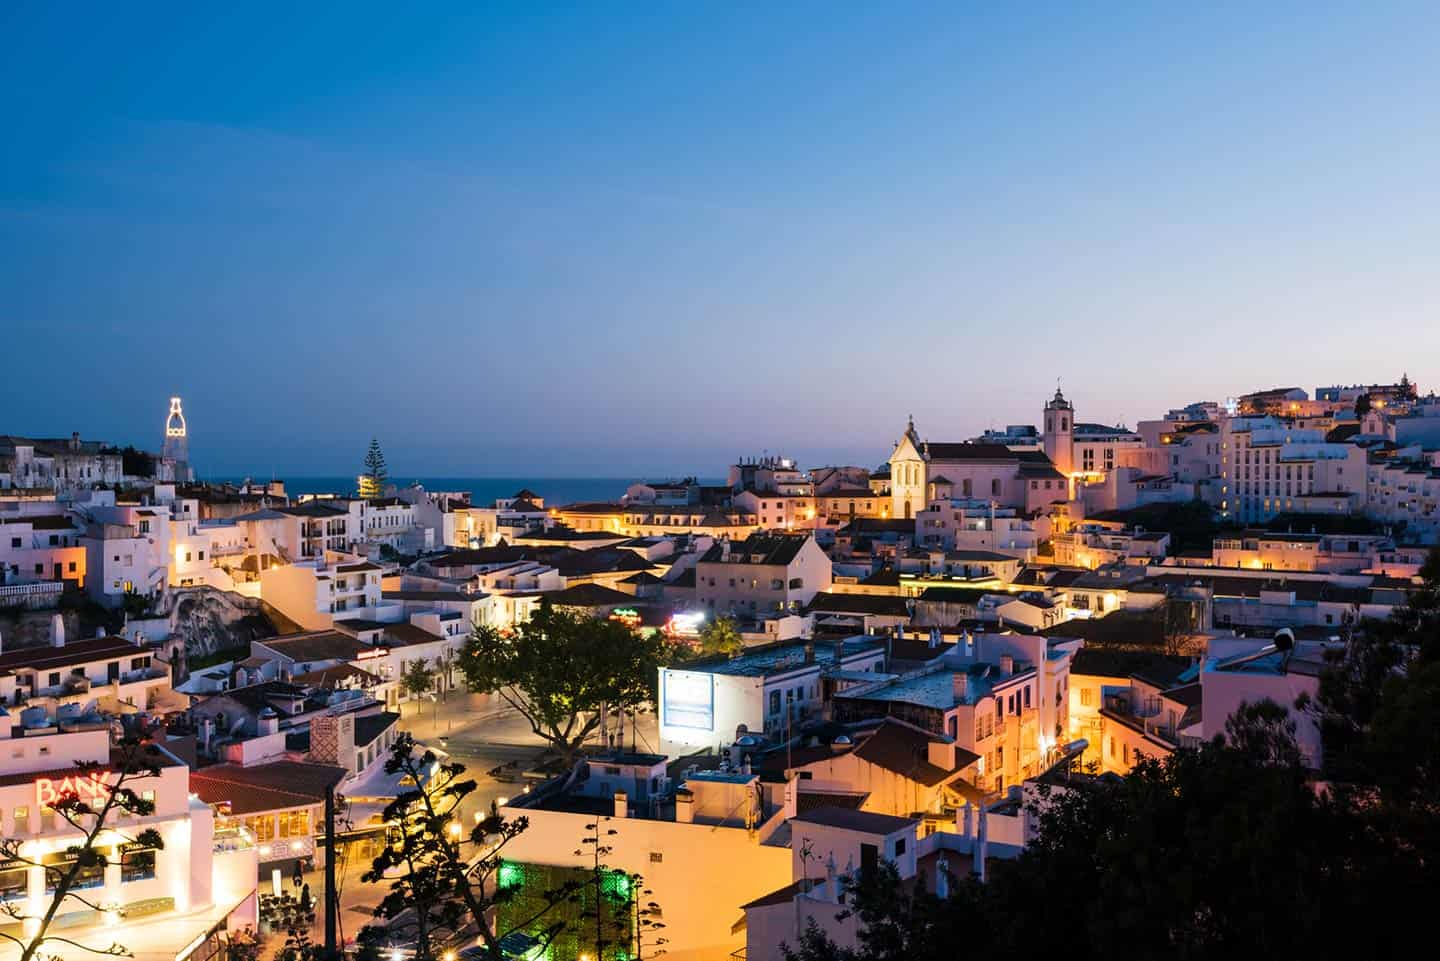 Image of old Town Albufeira hotels and town skyline